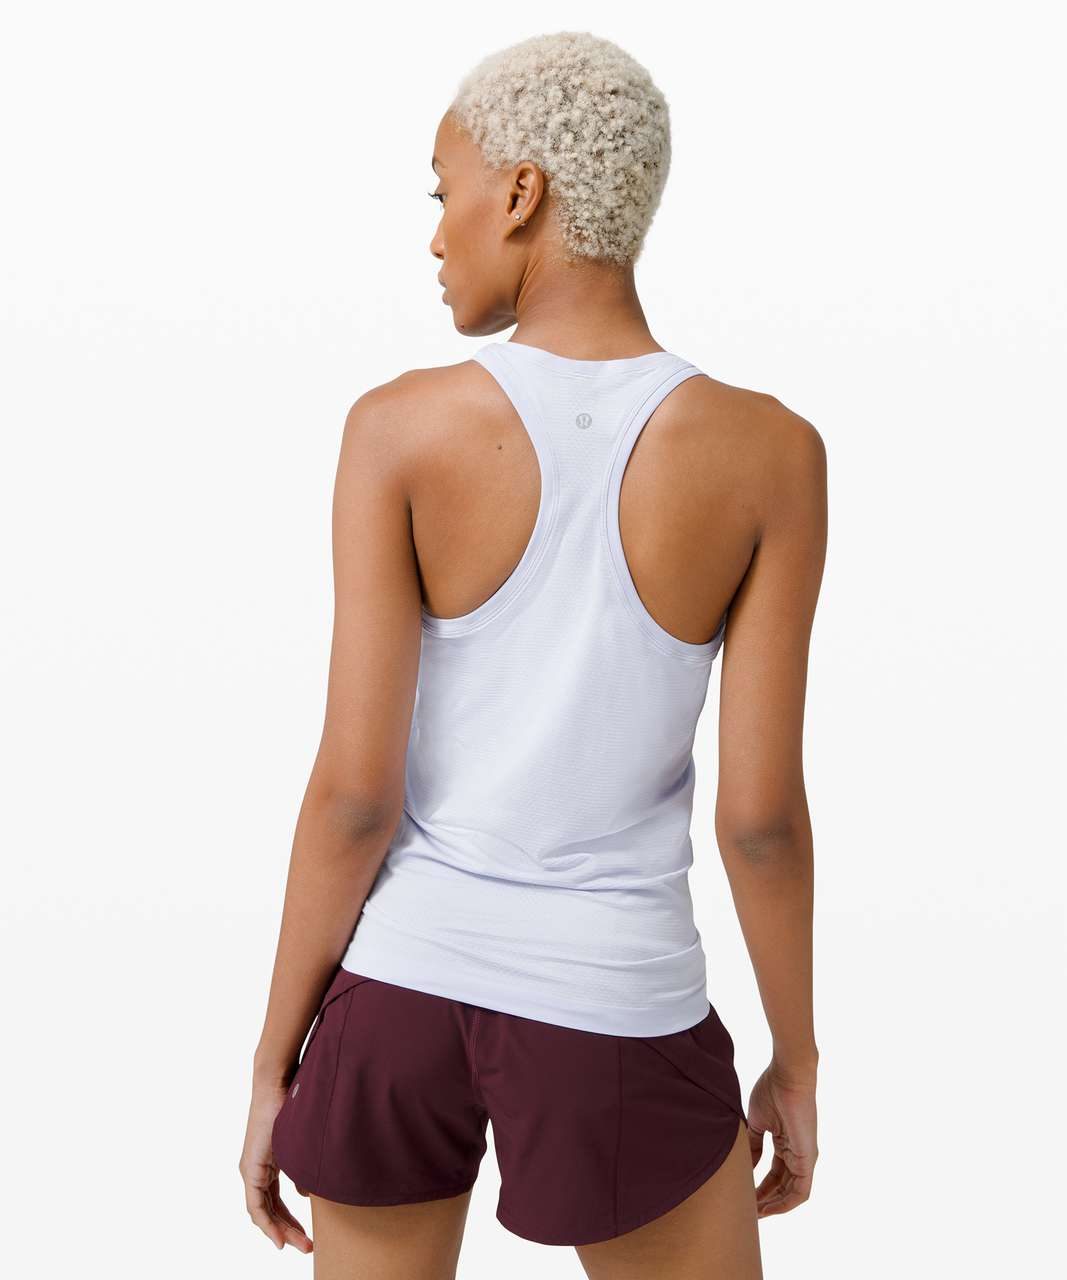 Lululemon Swiftly Tech Racerback 2.0 - Serene Blue / Serene Blue